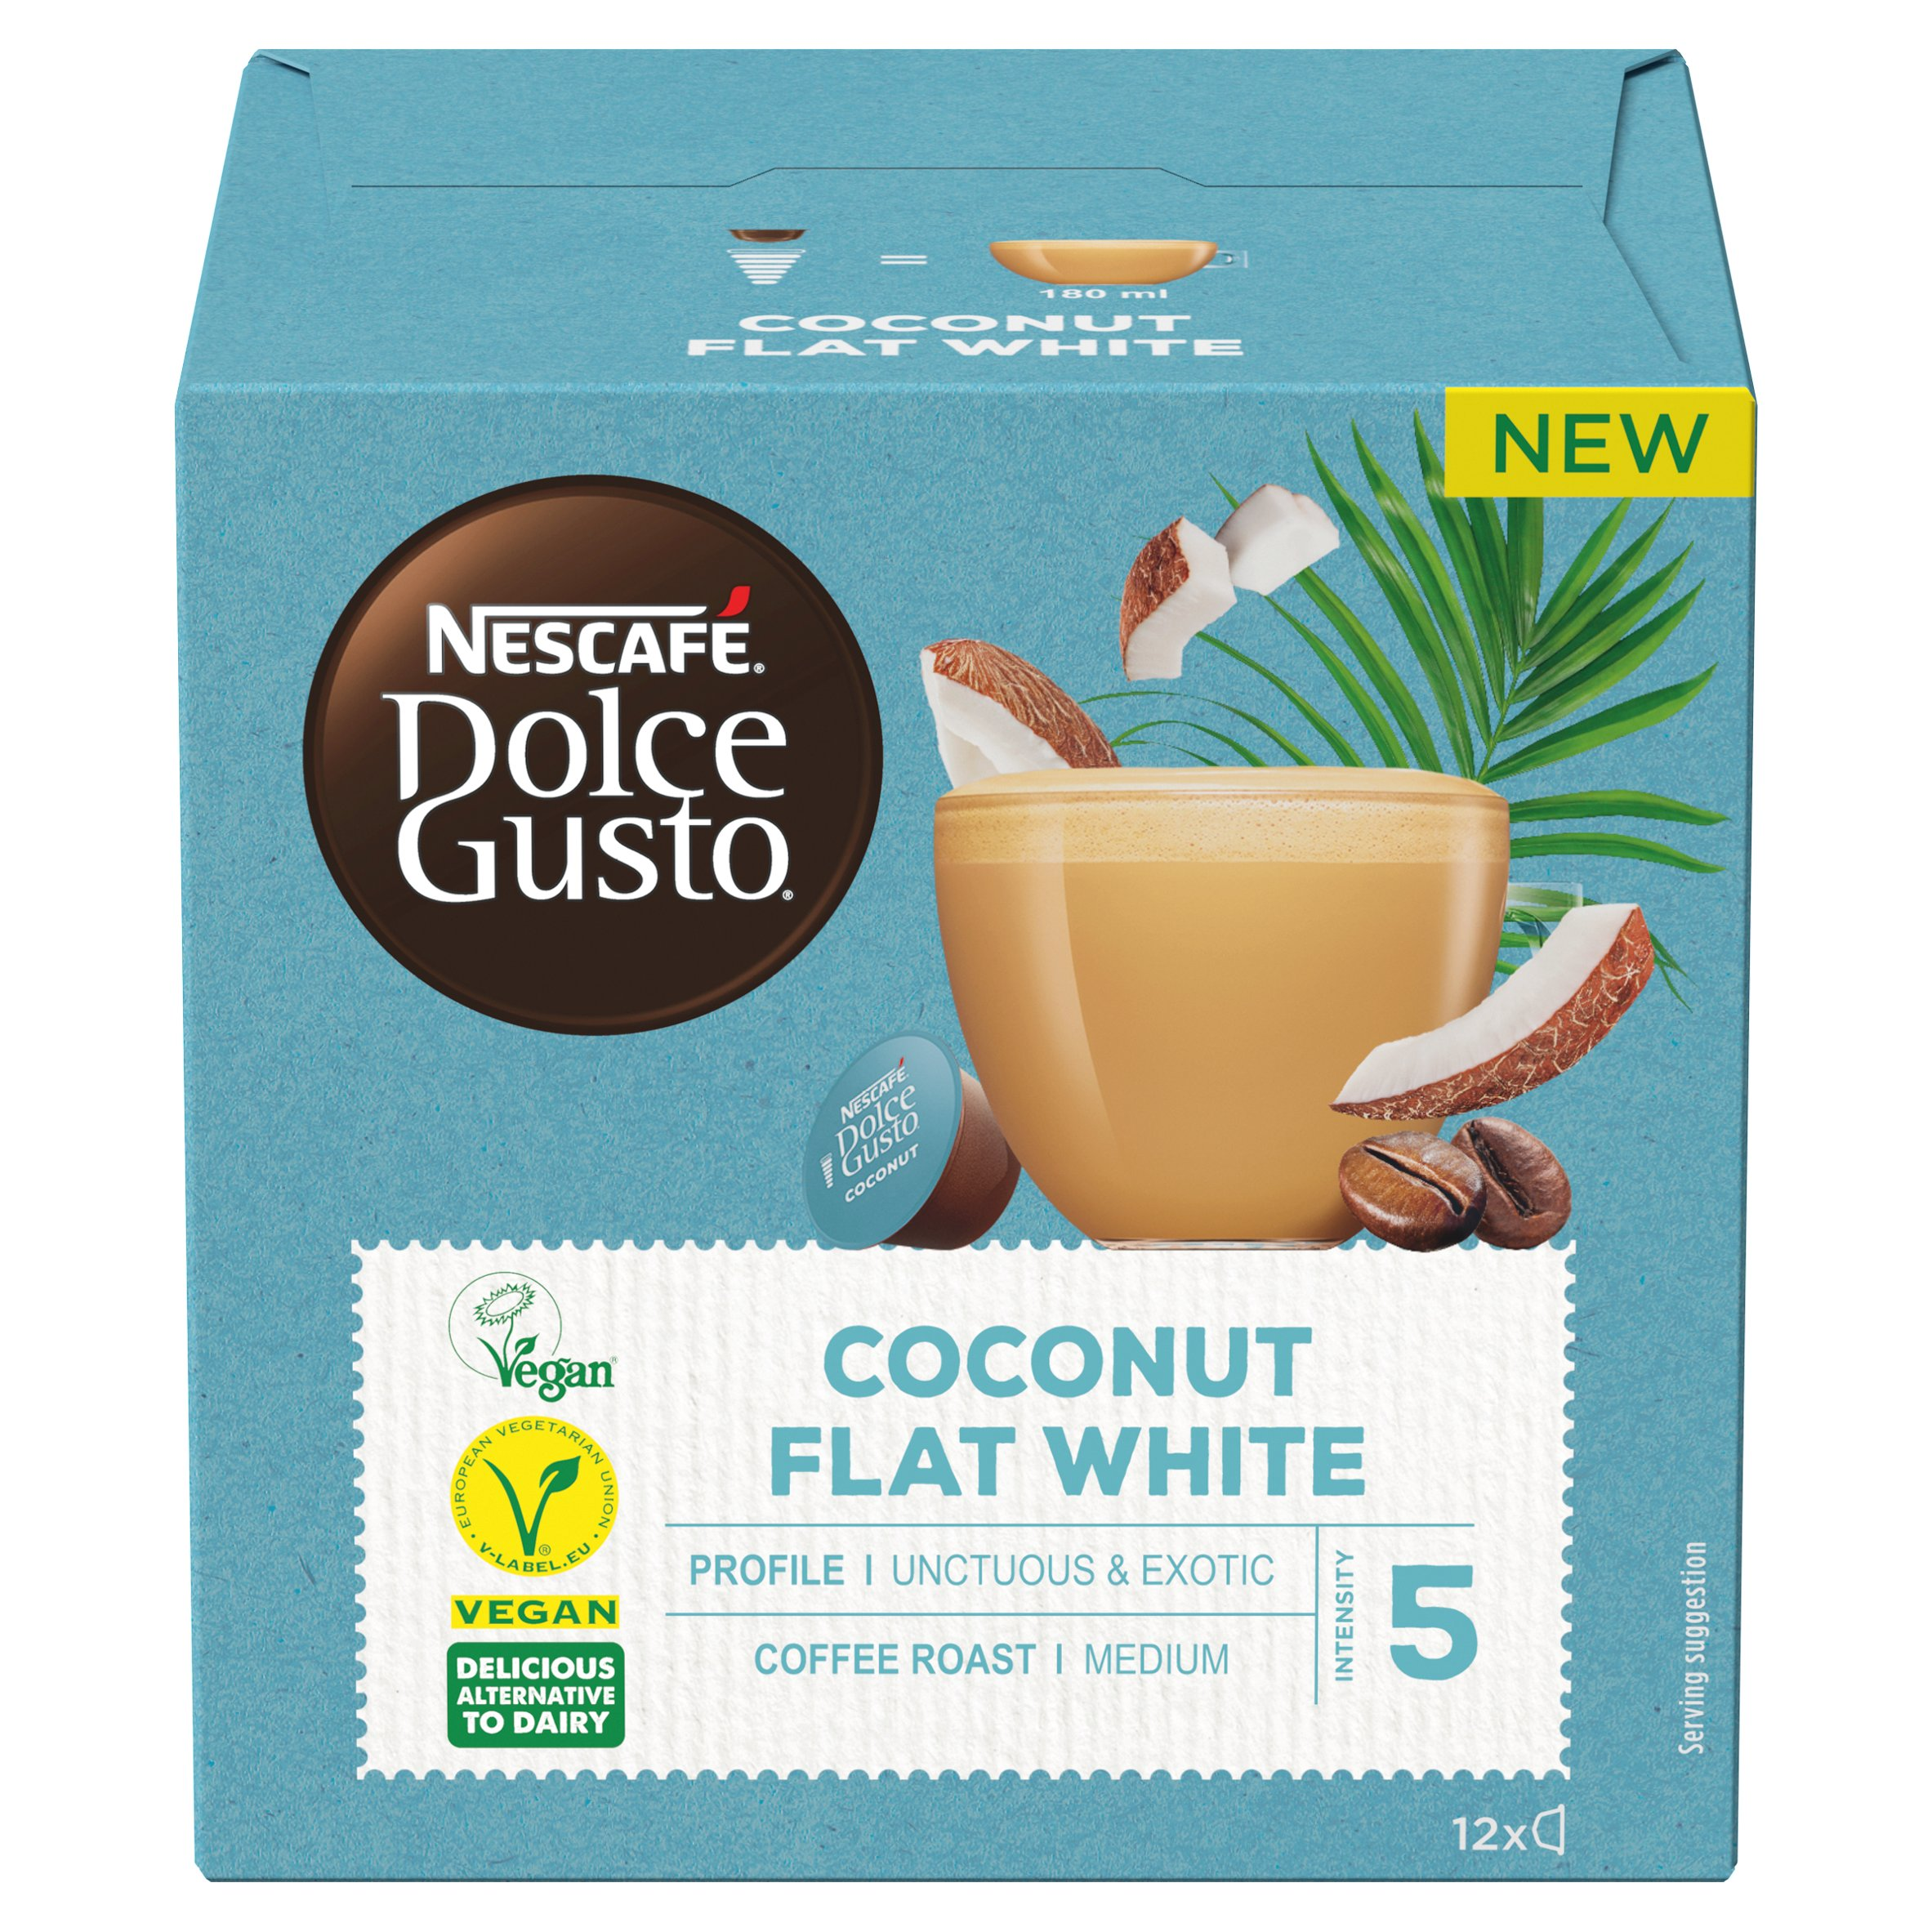 Nescafe Dolce Gusto Coconut Flat White Coffee Pods X12 116.4G